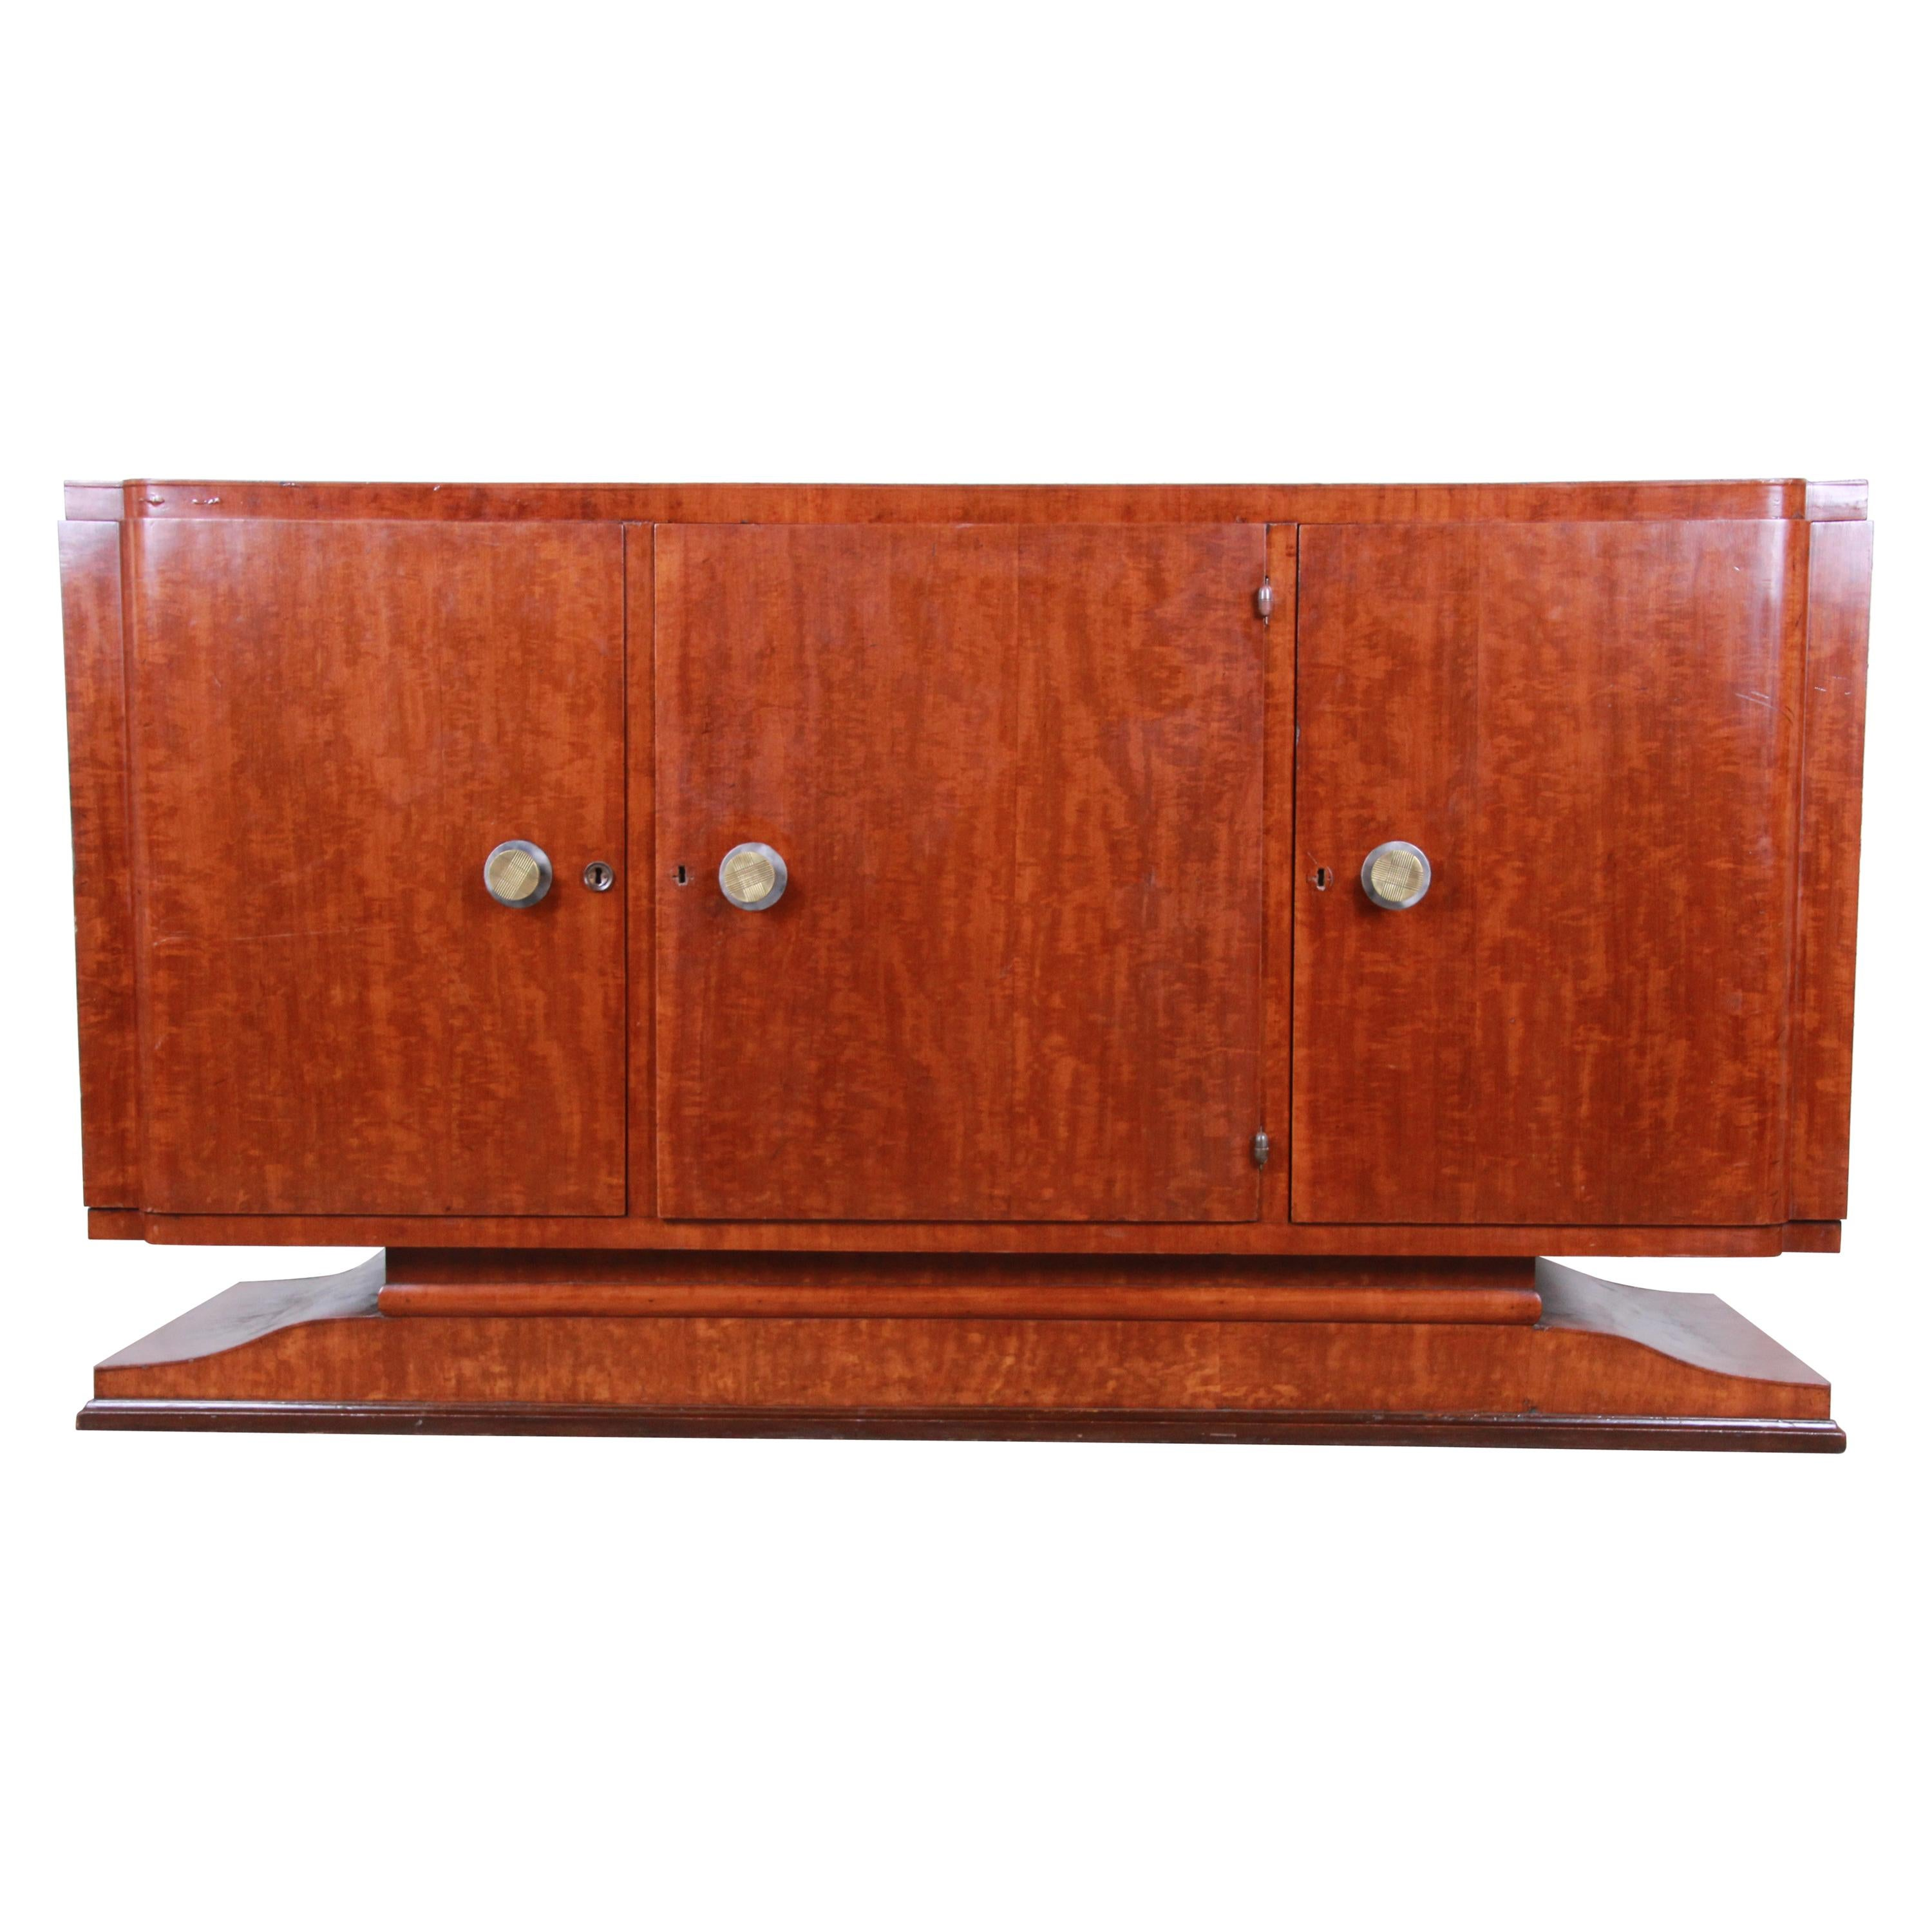 French Art Deco Mahogany Sideboard or Bar Cabinet, 1940s